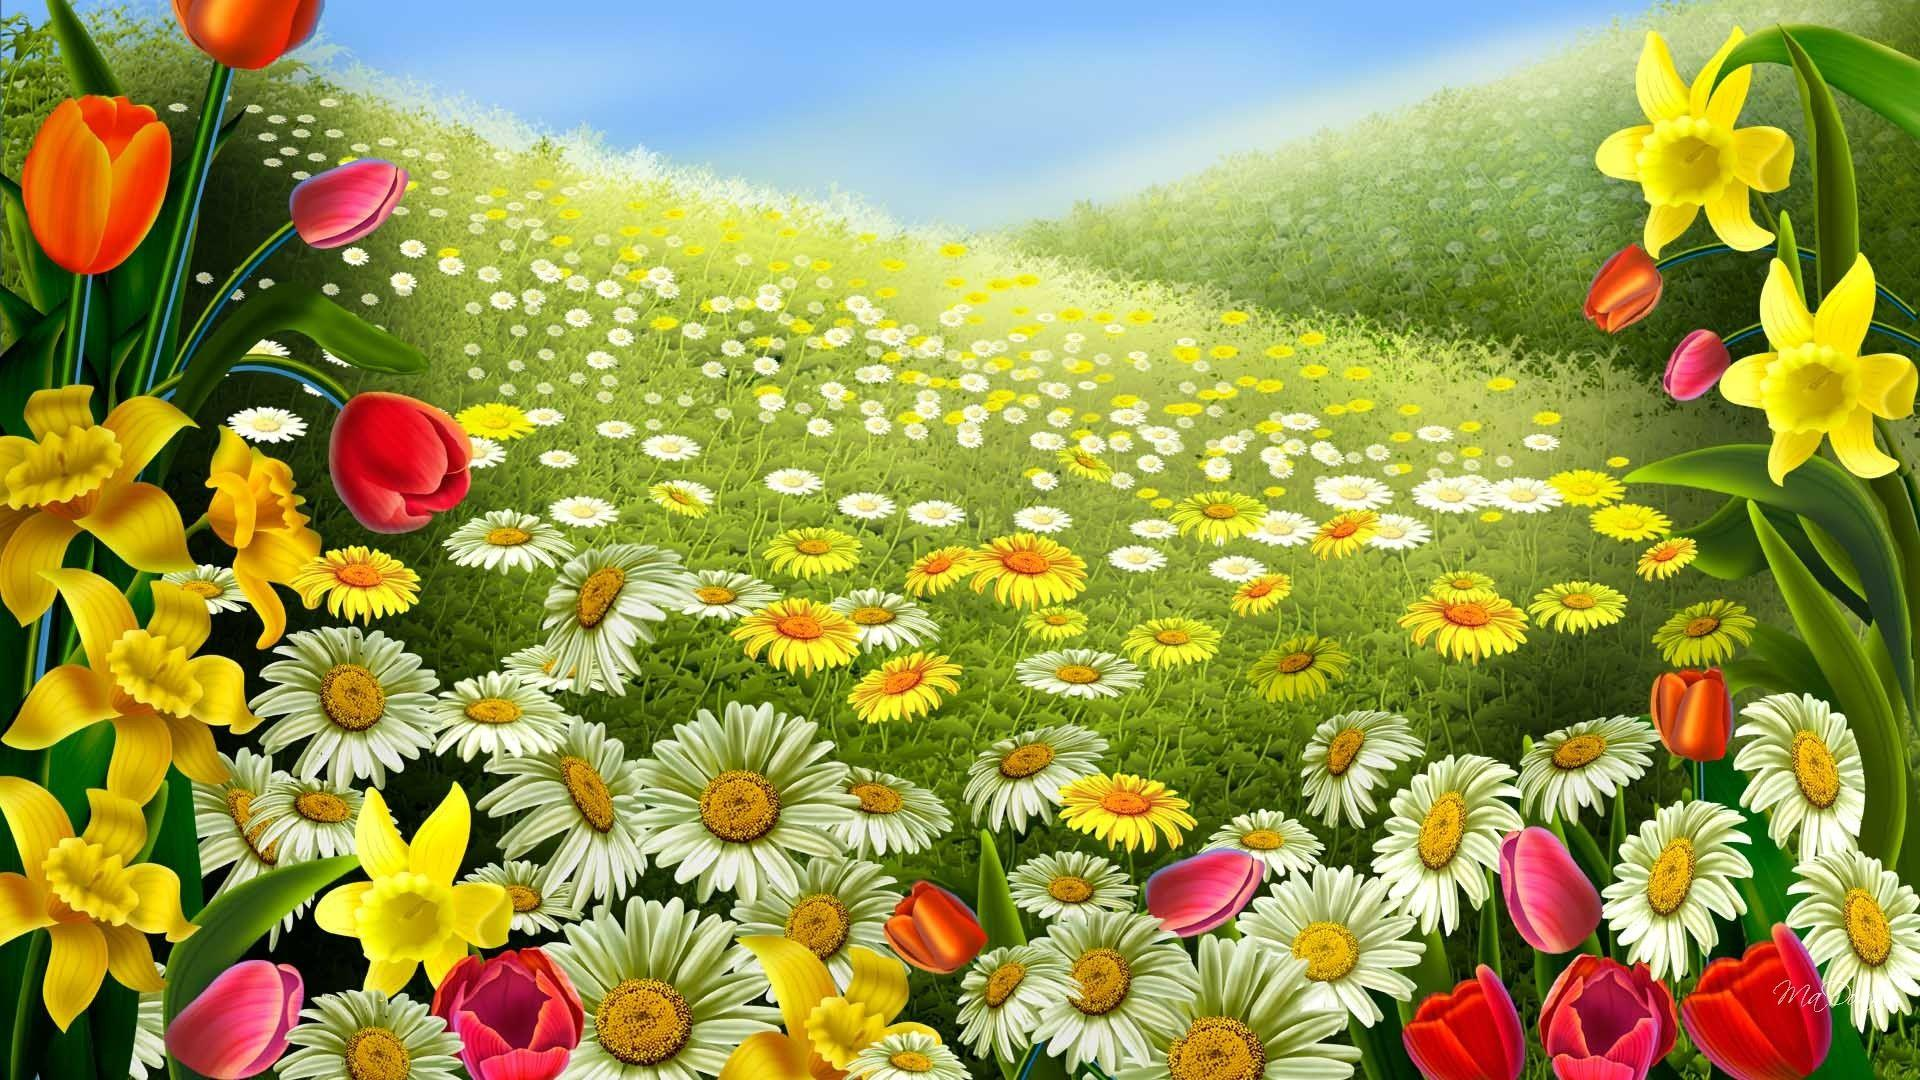 Spring Wallpapers Free Download For Desktop New